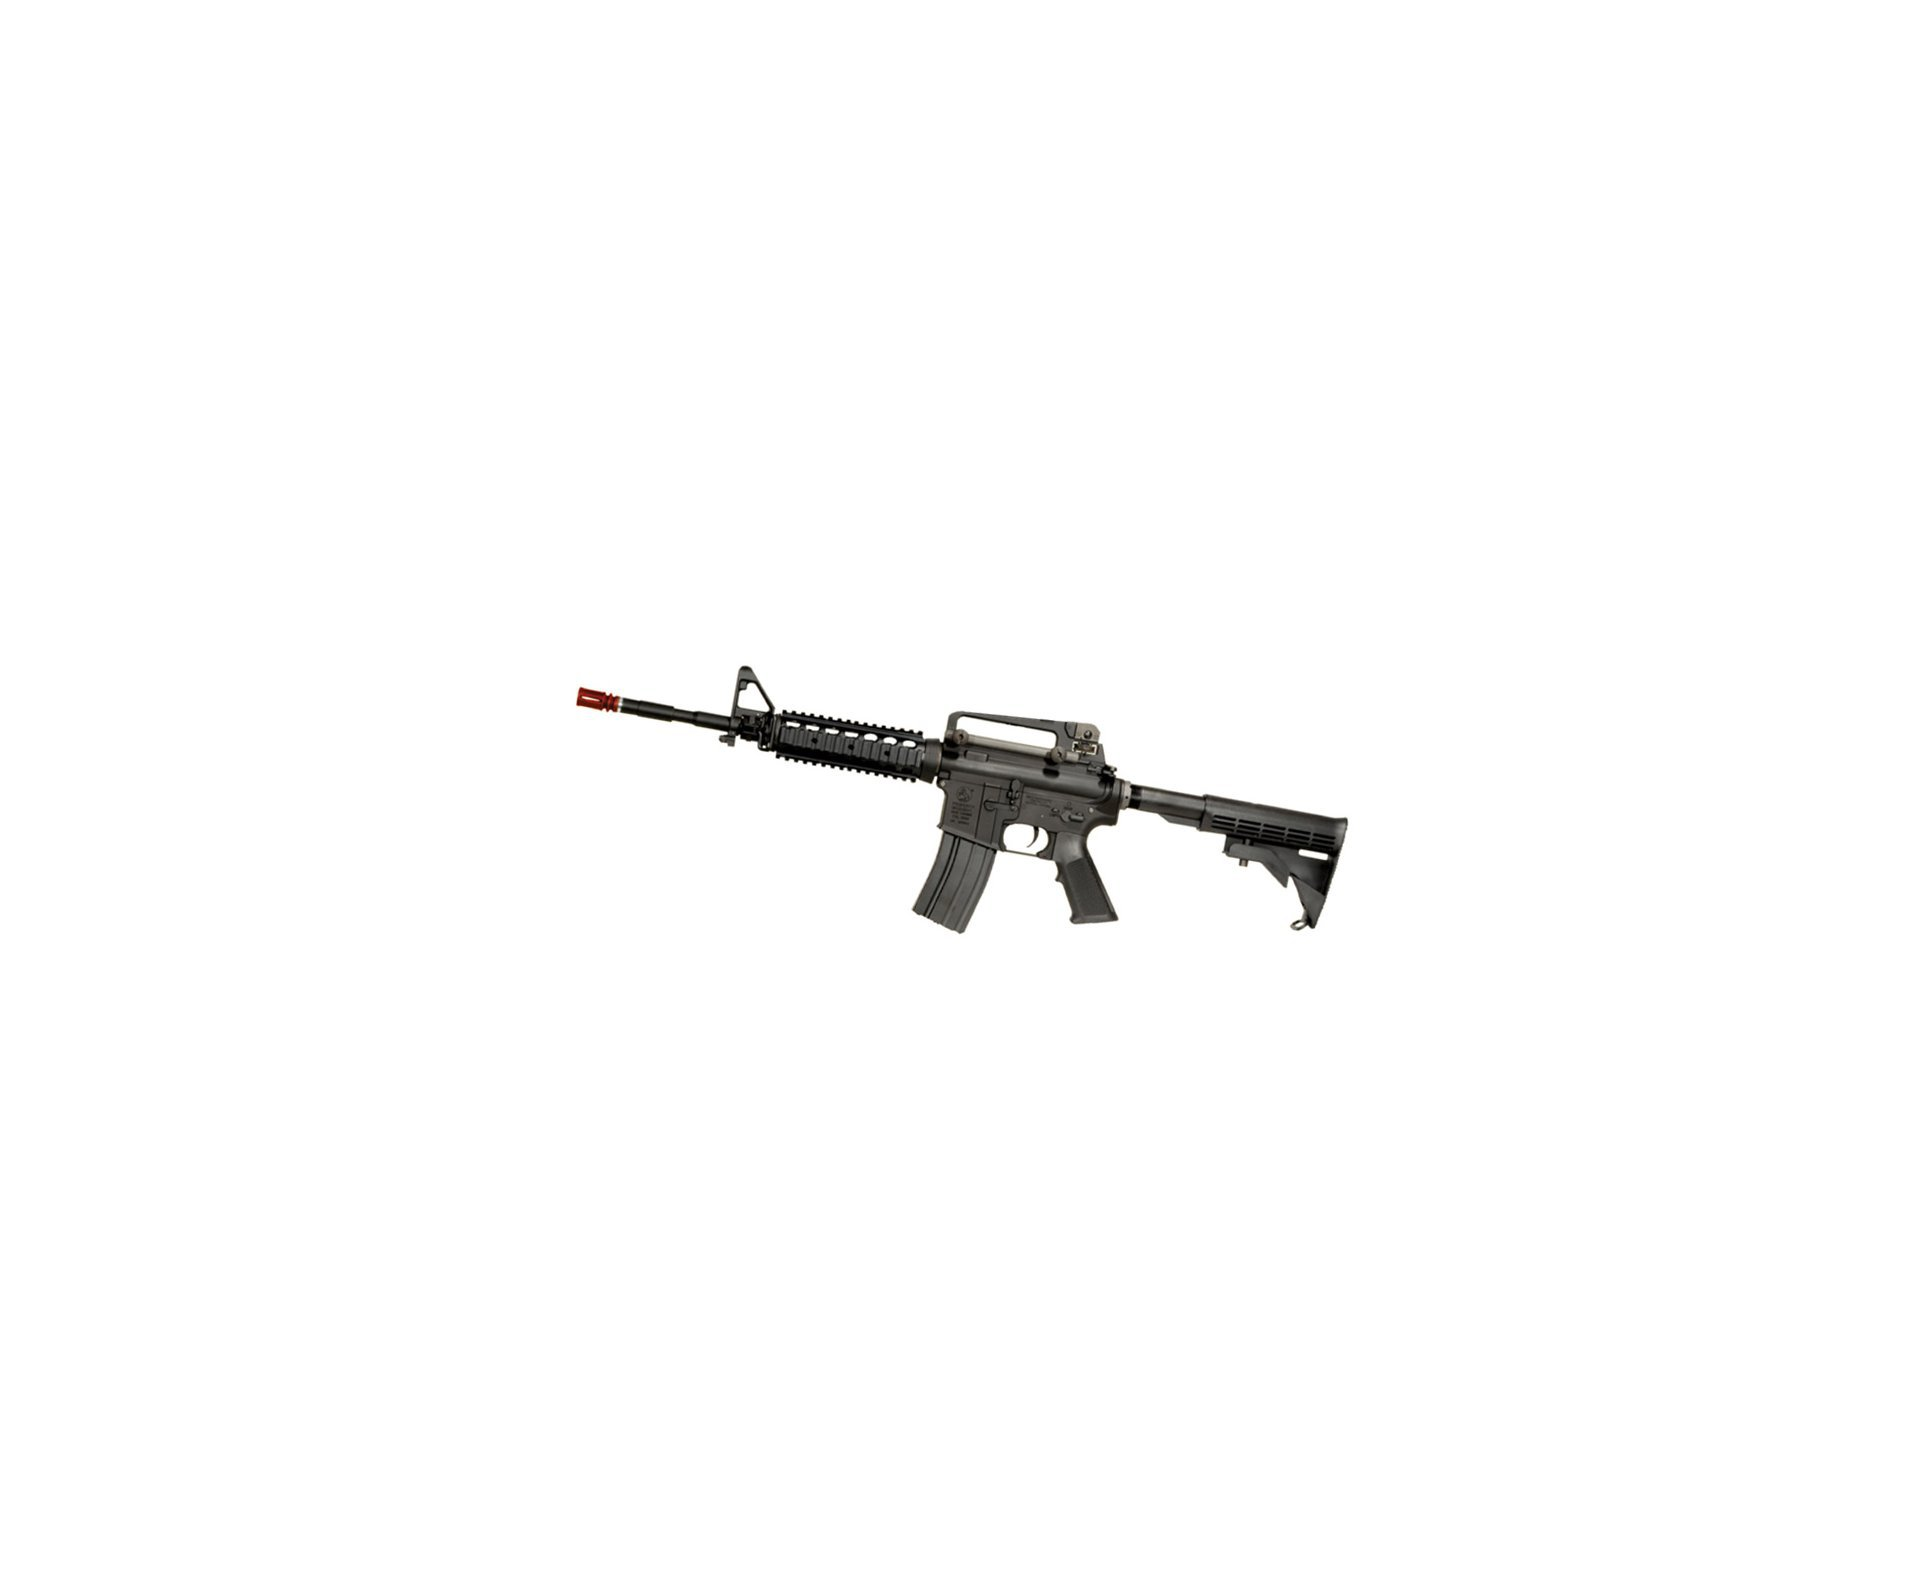 Rifle De Airsoft Colt M4a1ris Cal 6,0 Mm - King Arms + Farda Acu Digital Urban Swiss+arms - Tamanho M